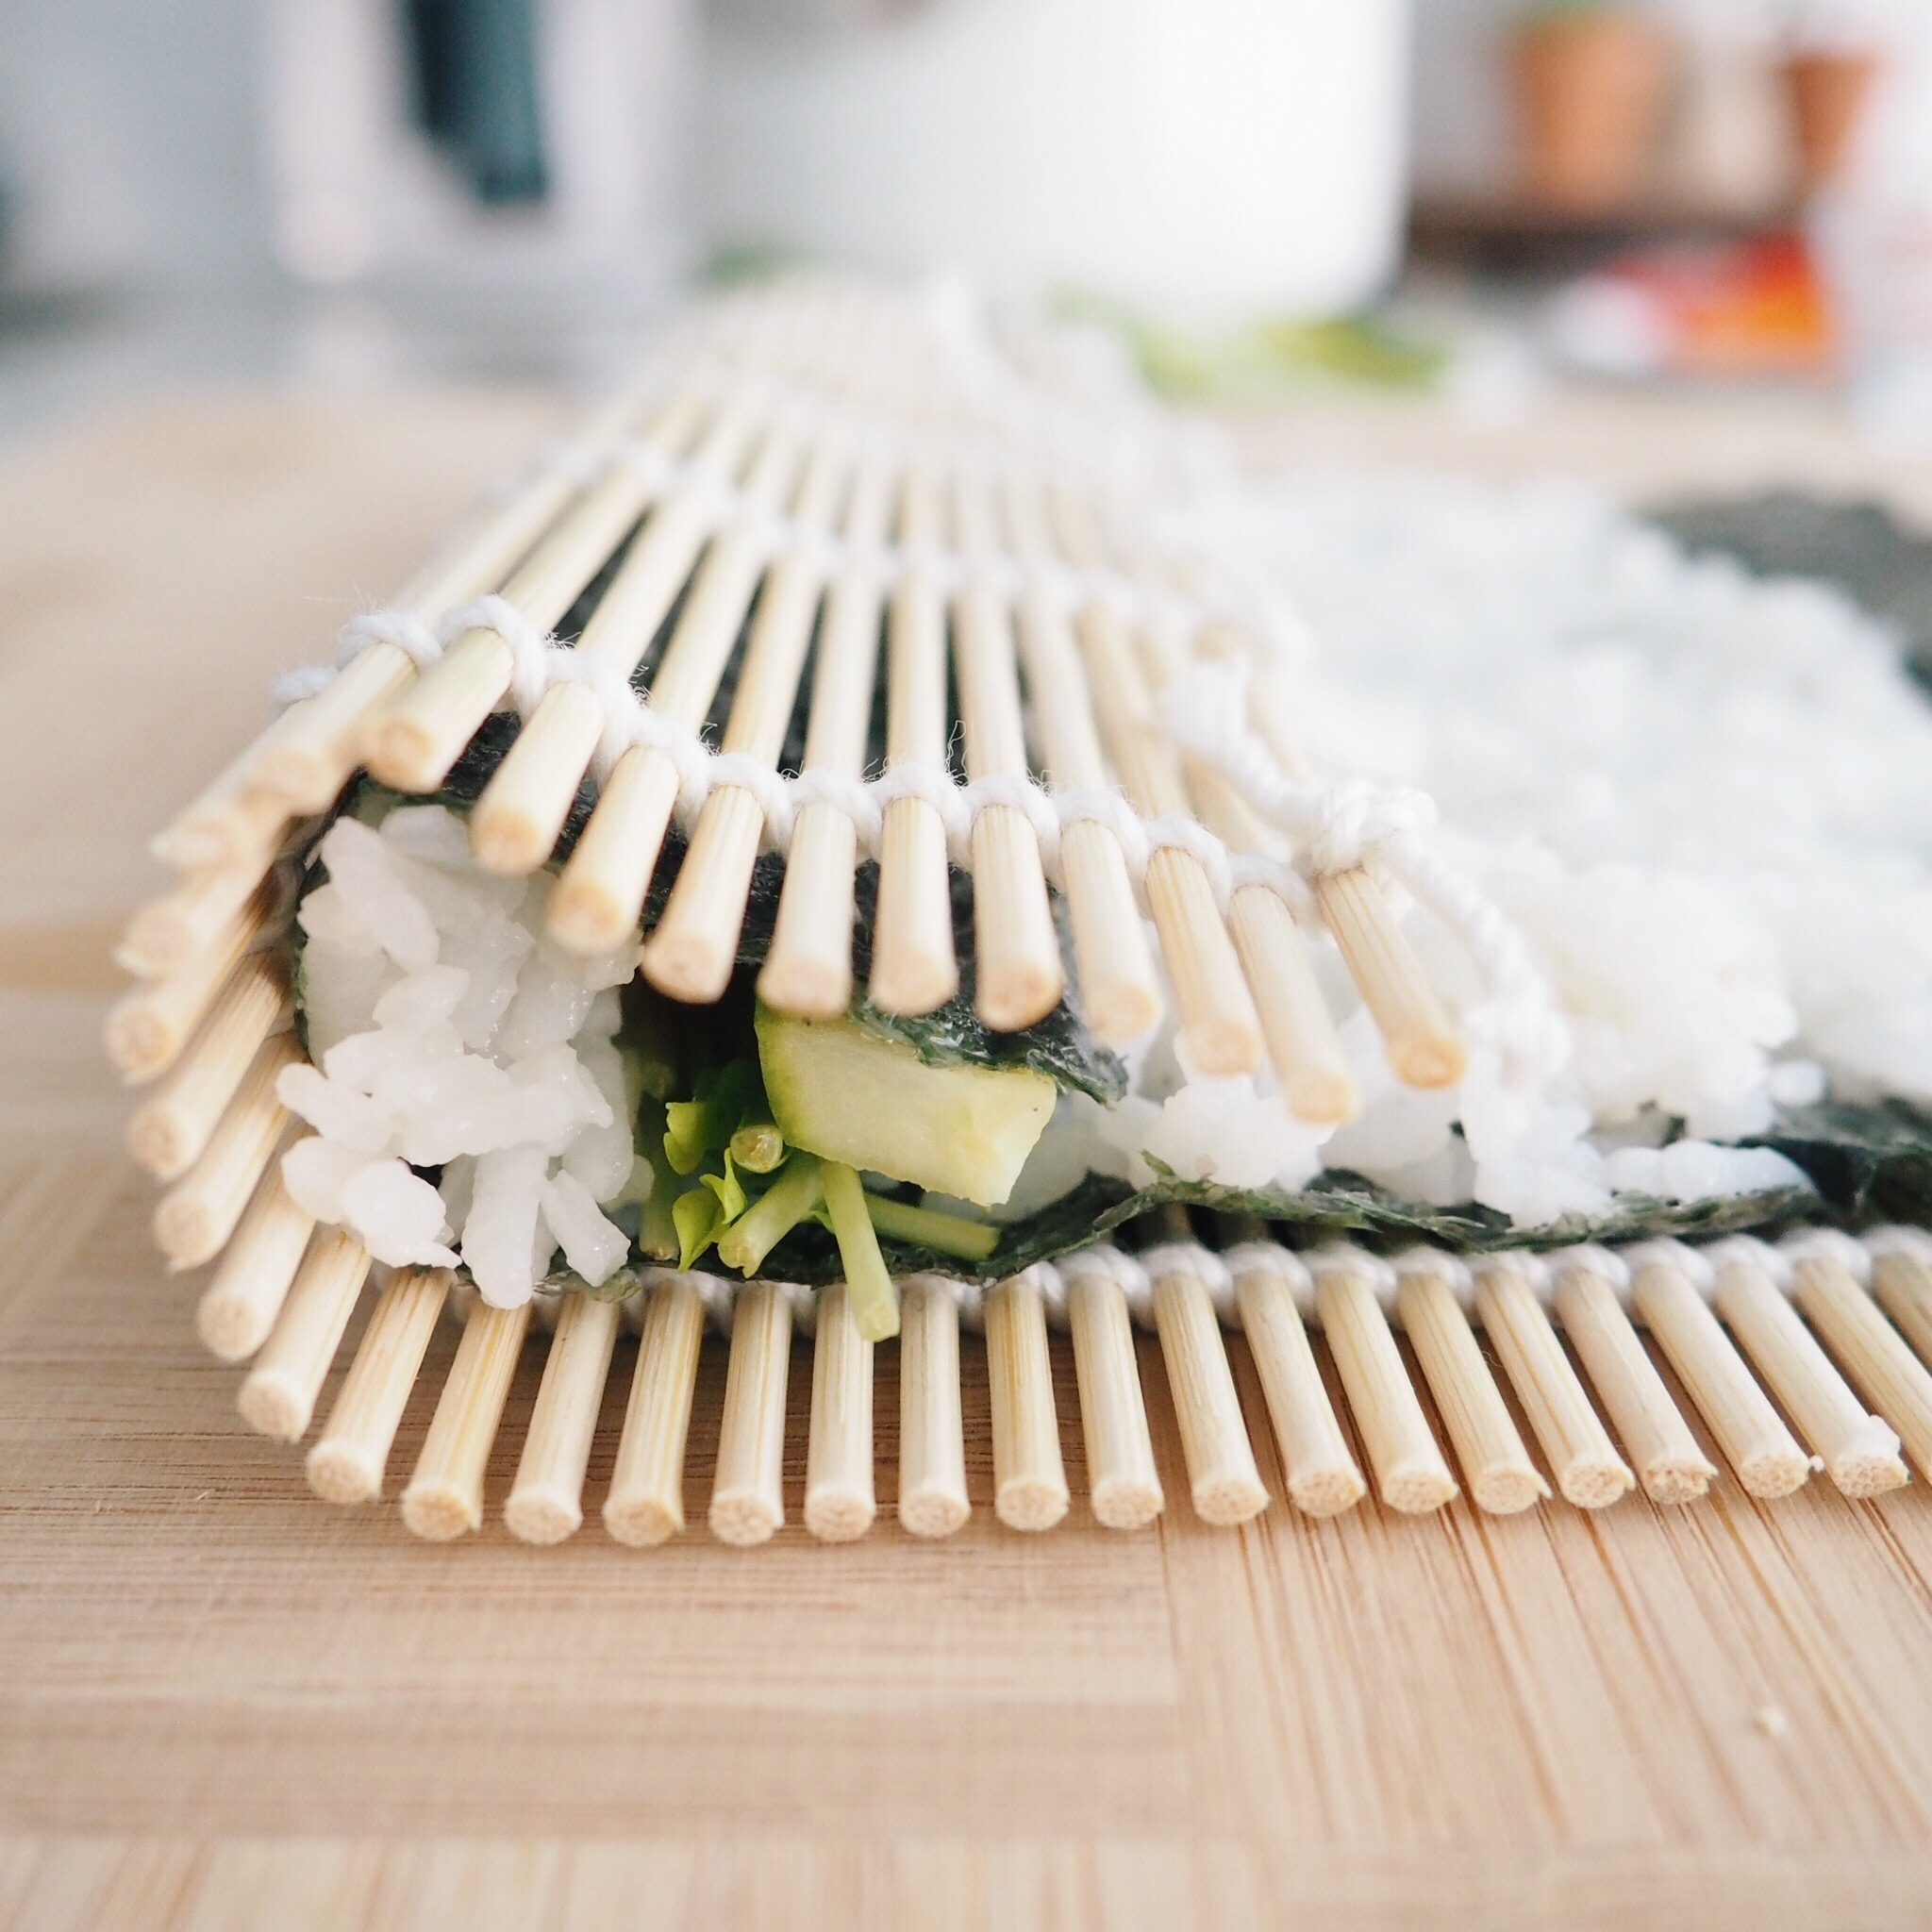 Step 4: Using the bamboo mat roller, tightly roll the vegetables in. This step is probably the most crucial to making your sushi look presentable.